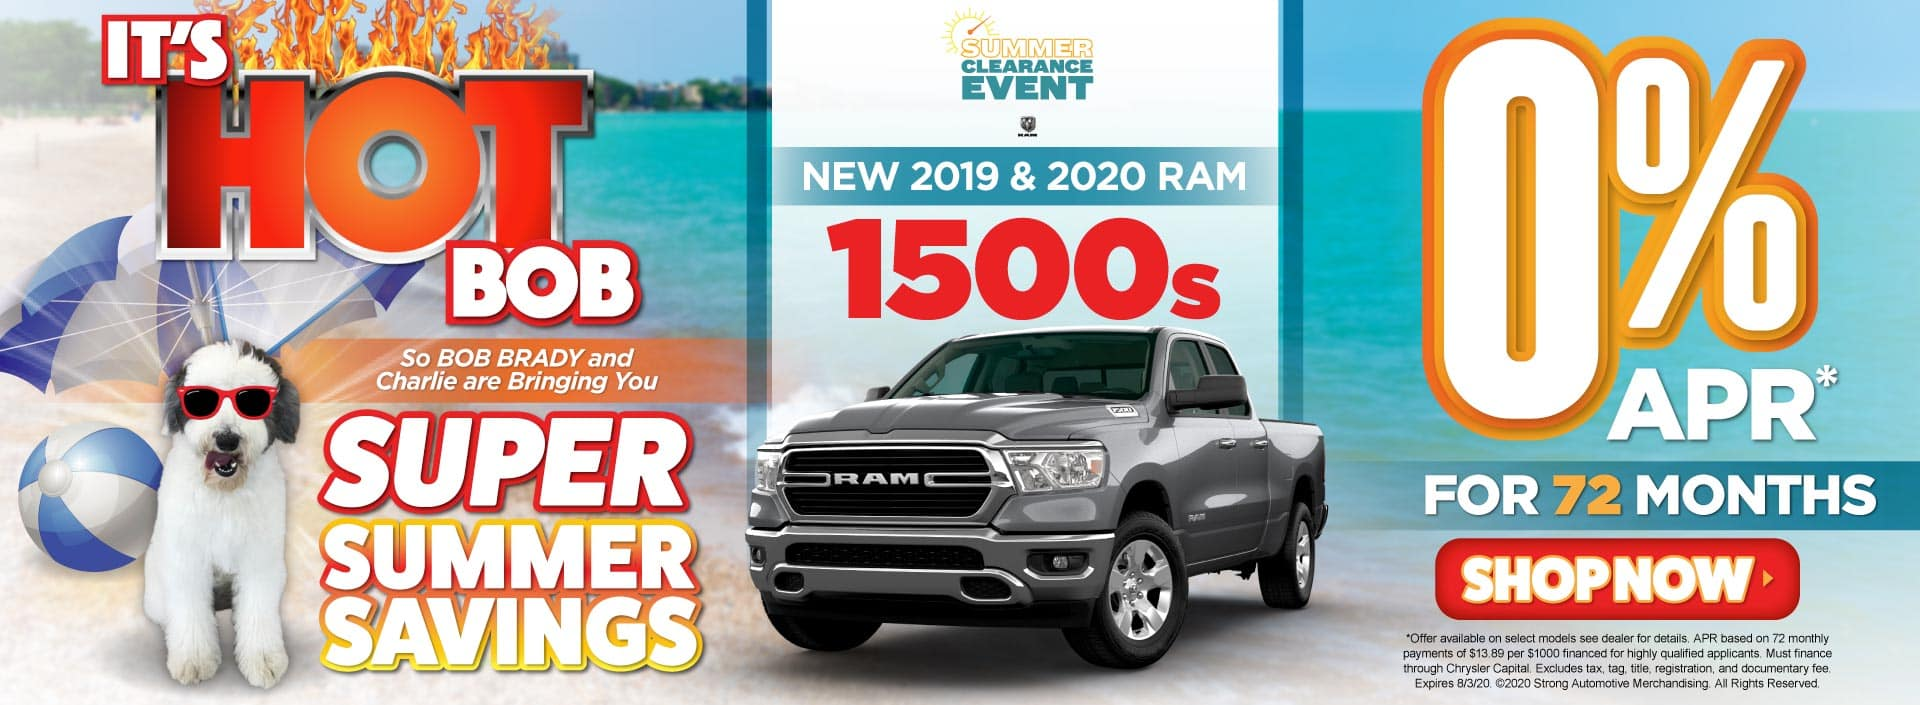 New 2019 & 2020 RAM 1500 0% APR for 72 Months - ACT NOW